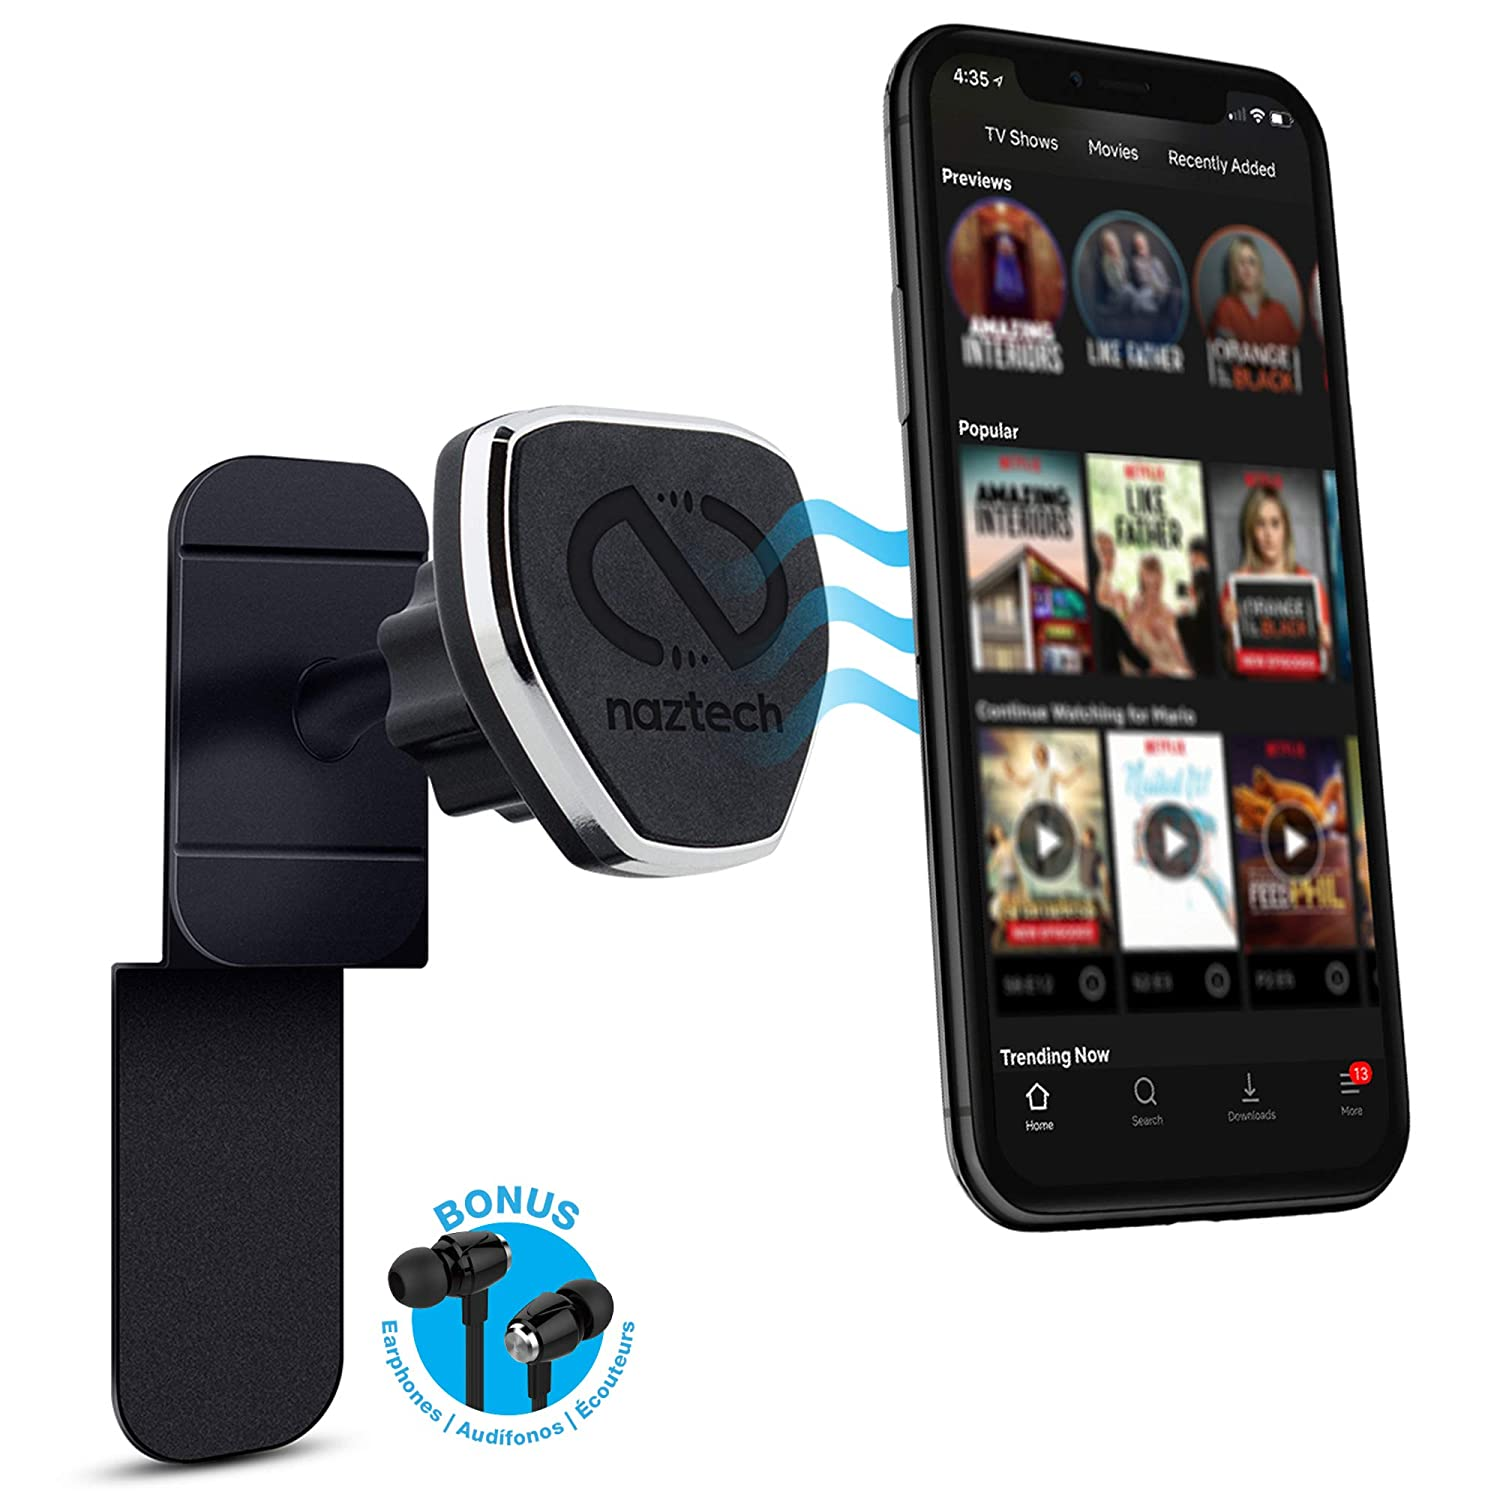 Naztech MagBuddy Universal Magnetic In-Flight Mount Turns Your Tablet or Phone Into Your Own Seat Back Entertainment For Use on the Plane,Train,Car